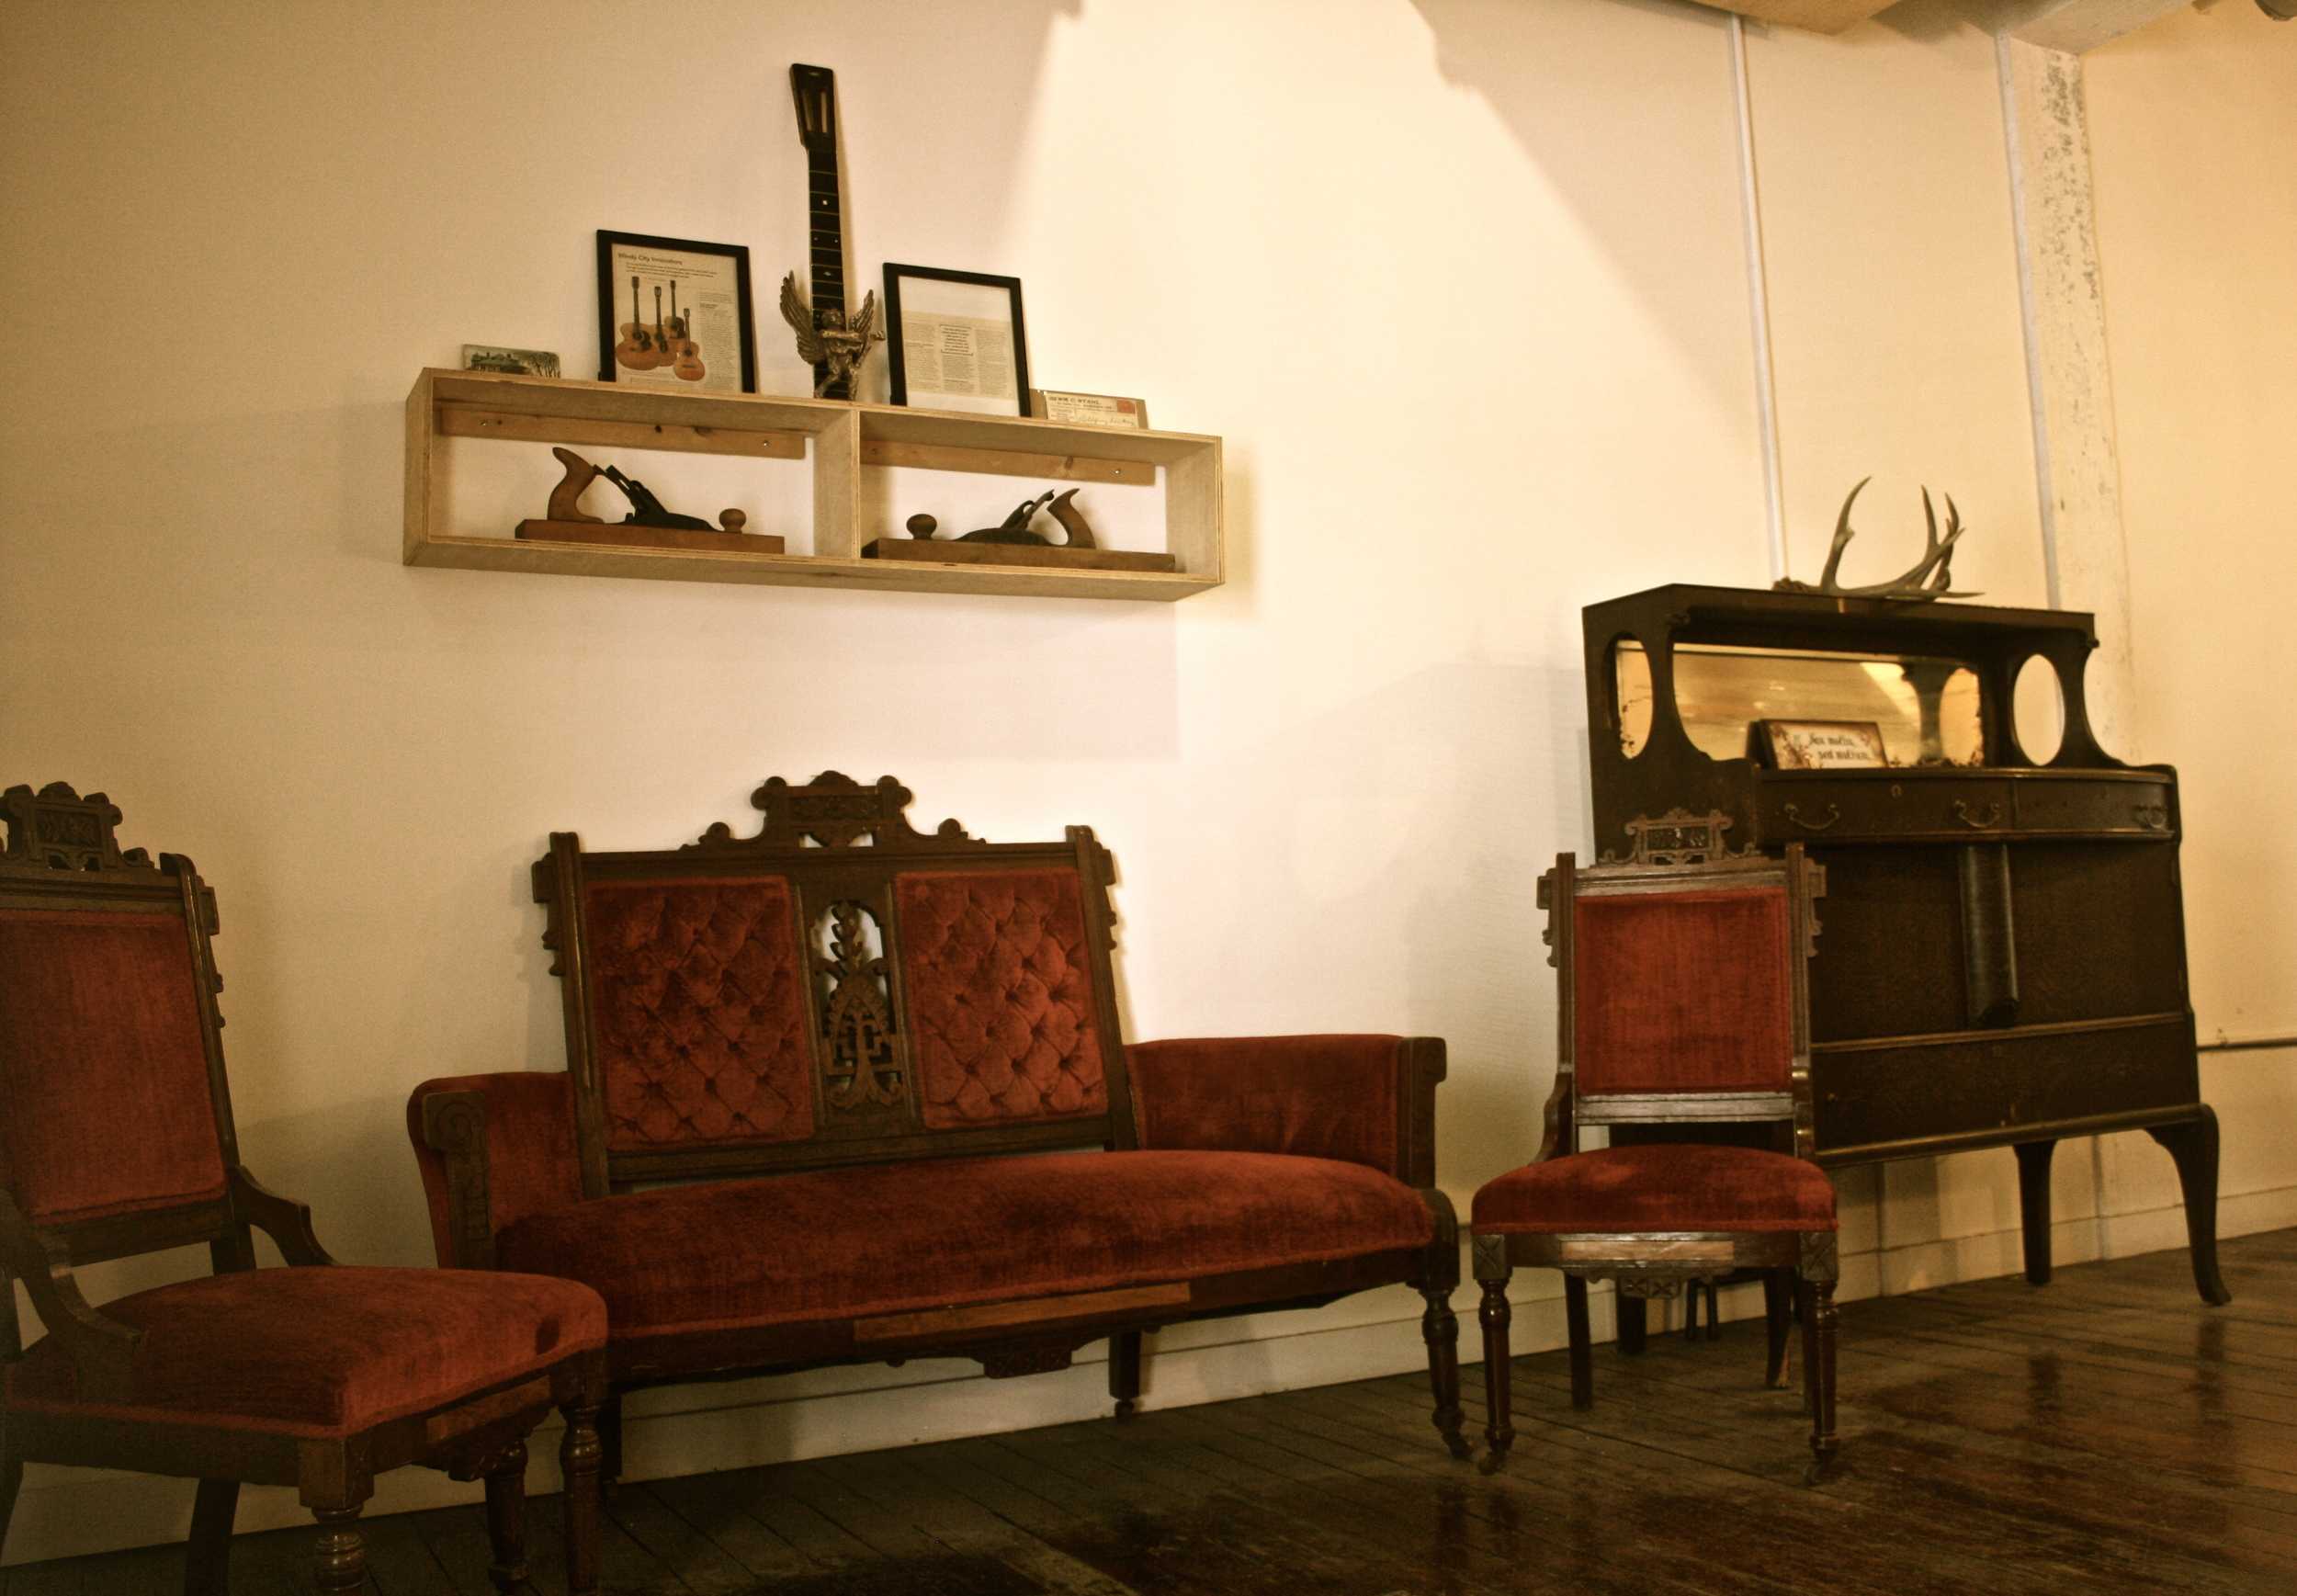 The foyer picking parlor and its antiquity furnishings